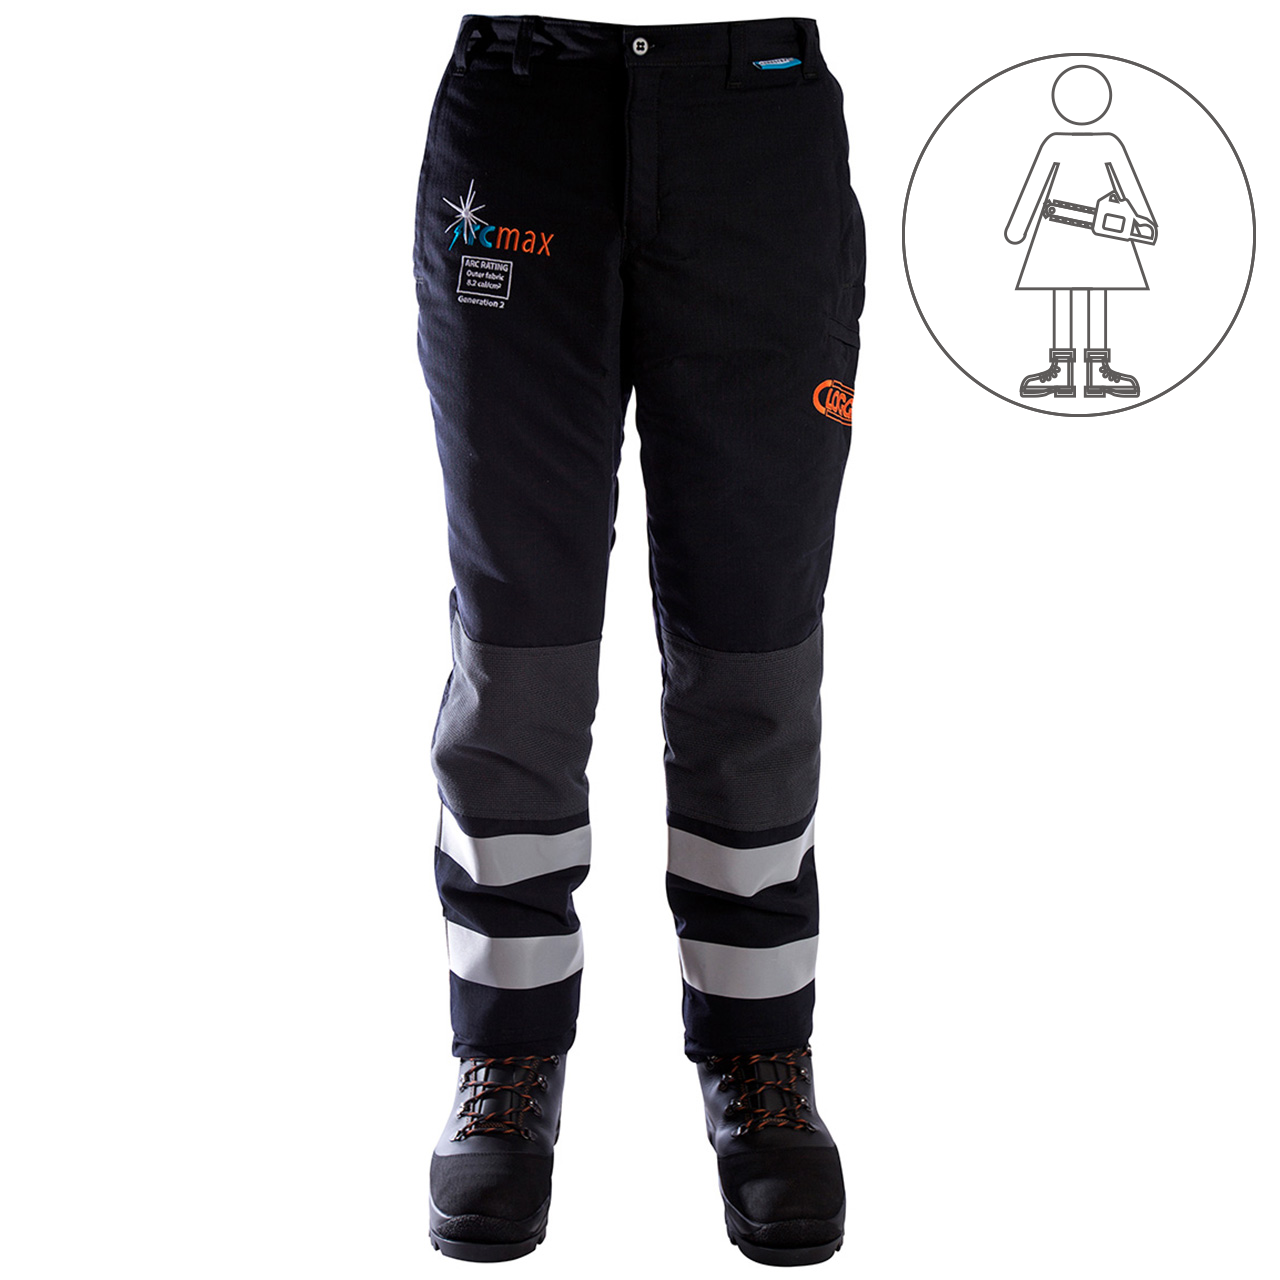 Clogger Arcmax Premium Arc Rated Fire Resistant Women's Chainsaw Pants